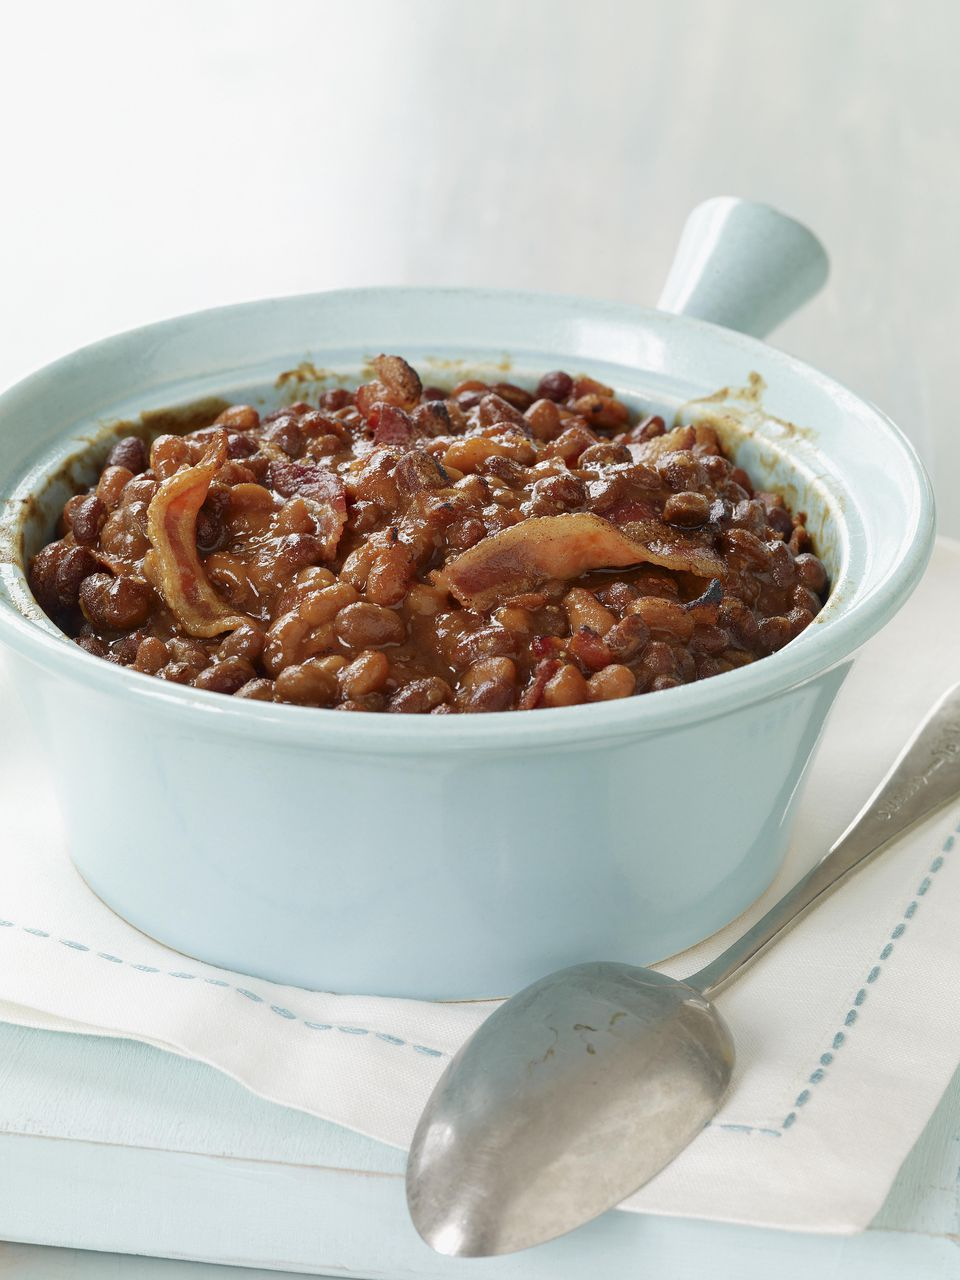 Crockpot Pork and Beans